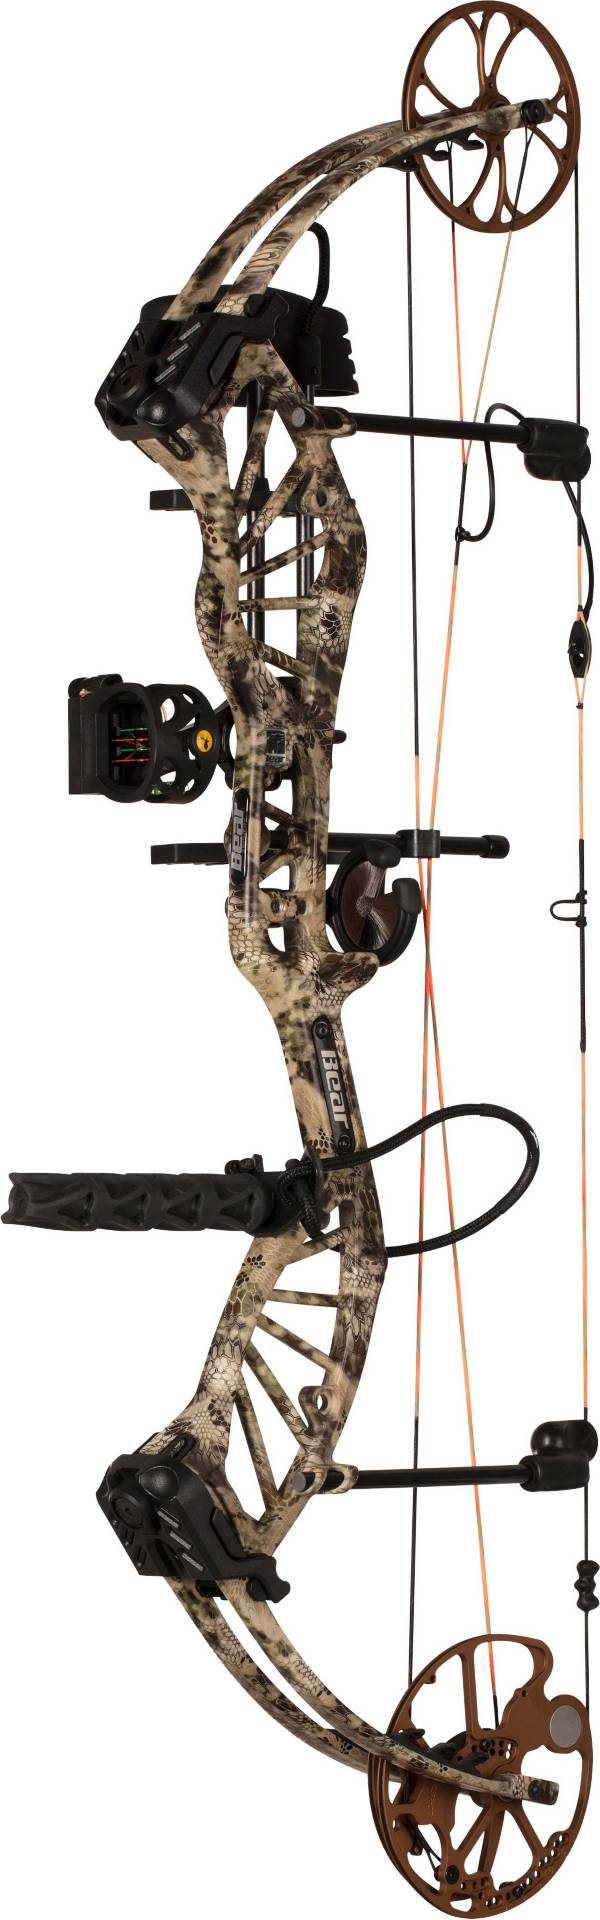 Bear Archery Approach RTH Compound Bow Package product image